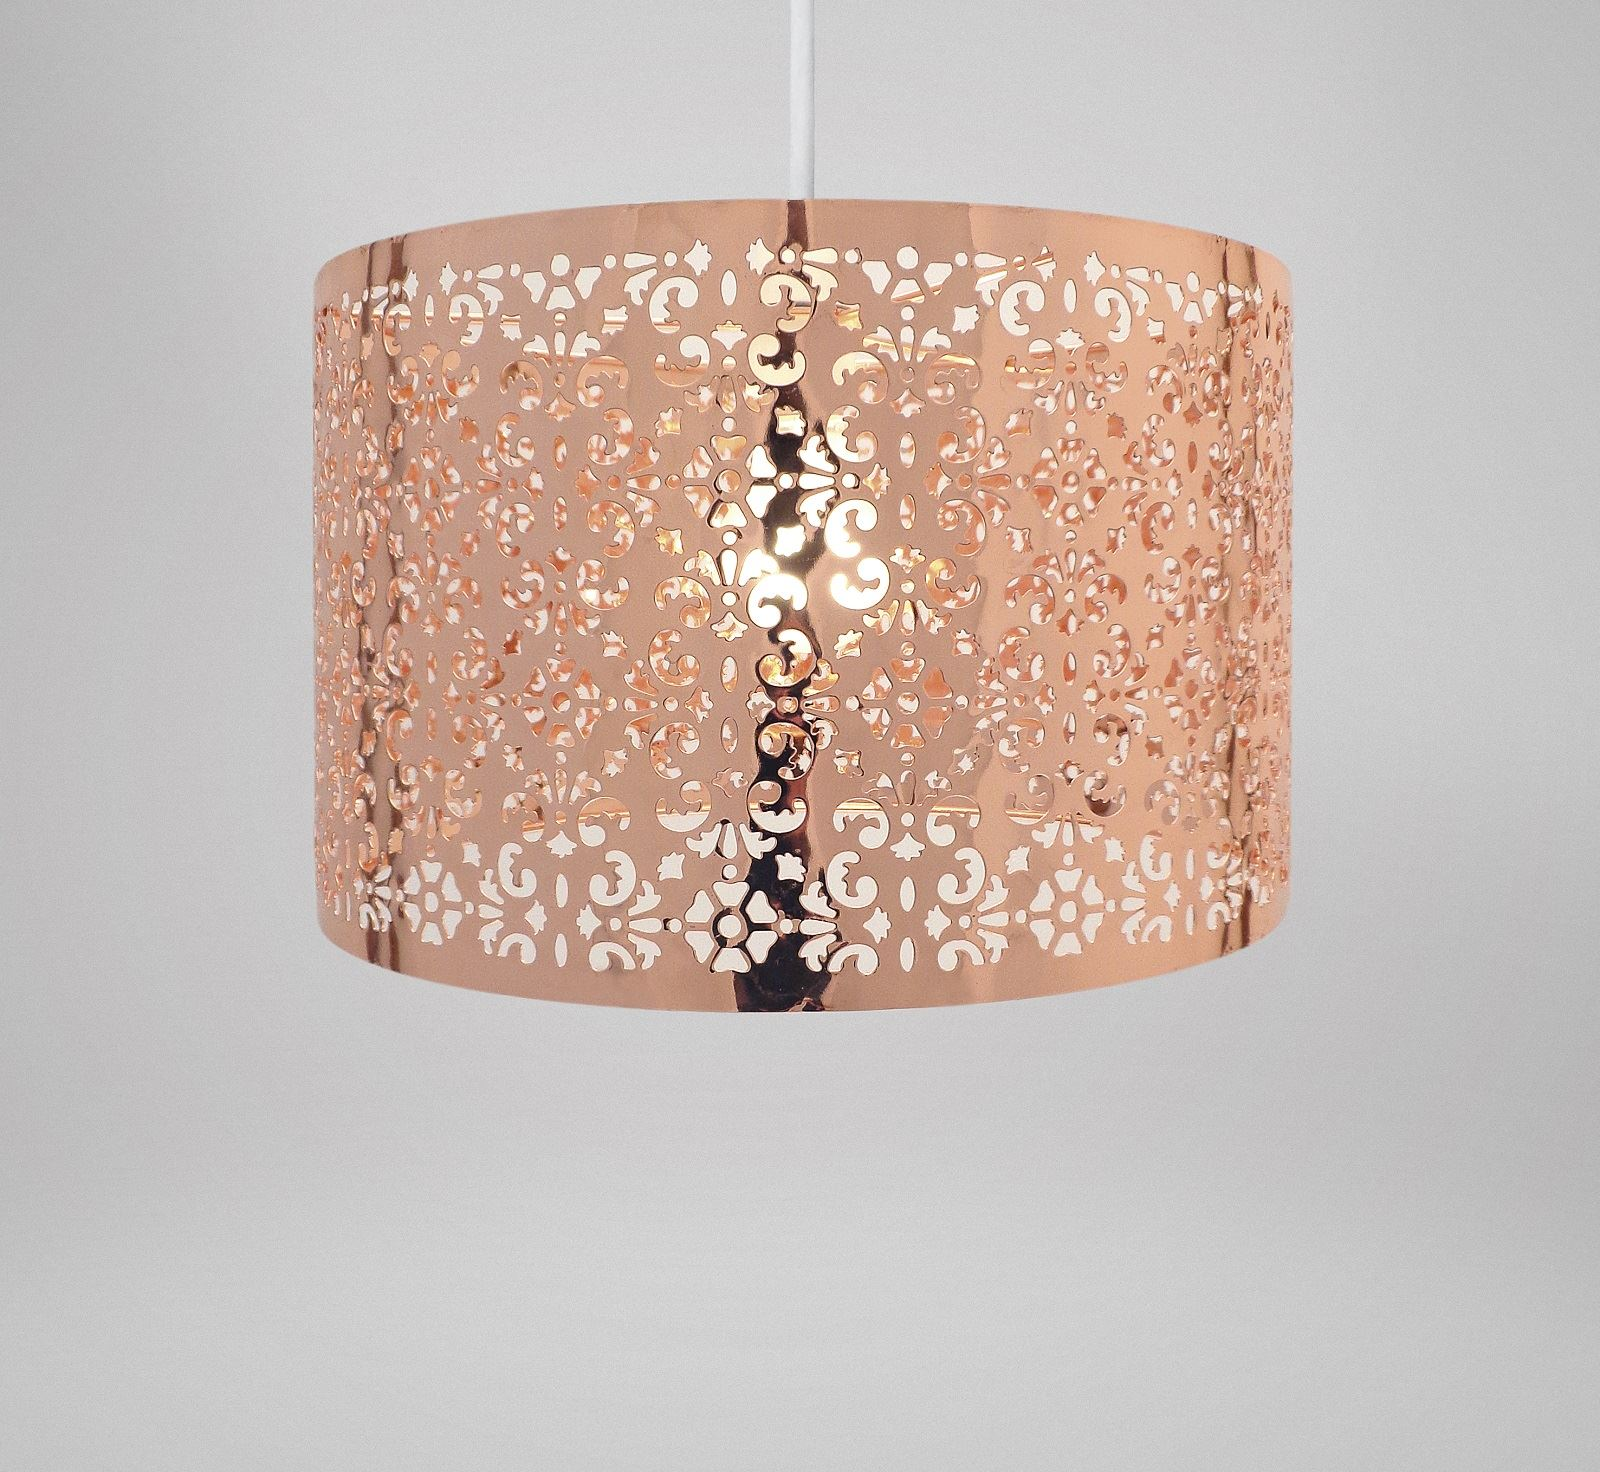 Easy Ceiling Lamp Shade: Large Metal Laser Cut Chandelier Universal Ceiling Light